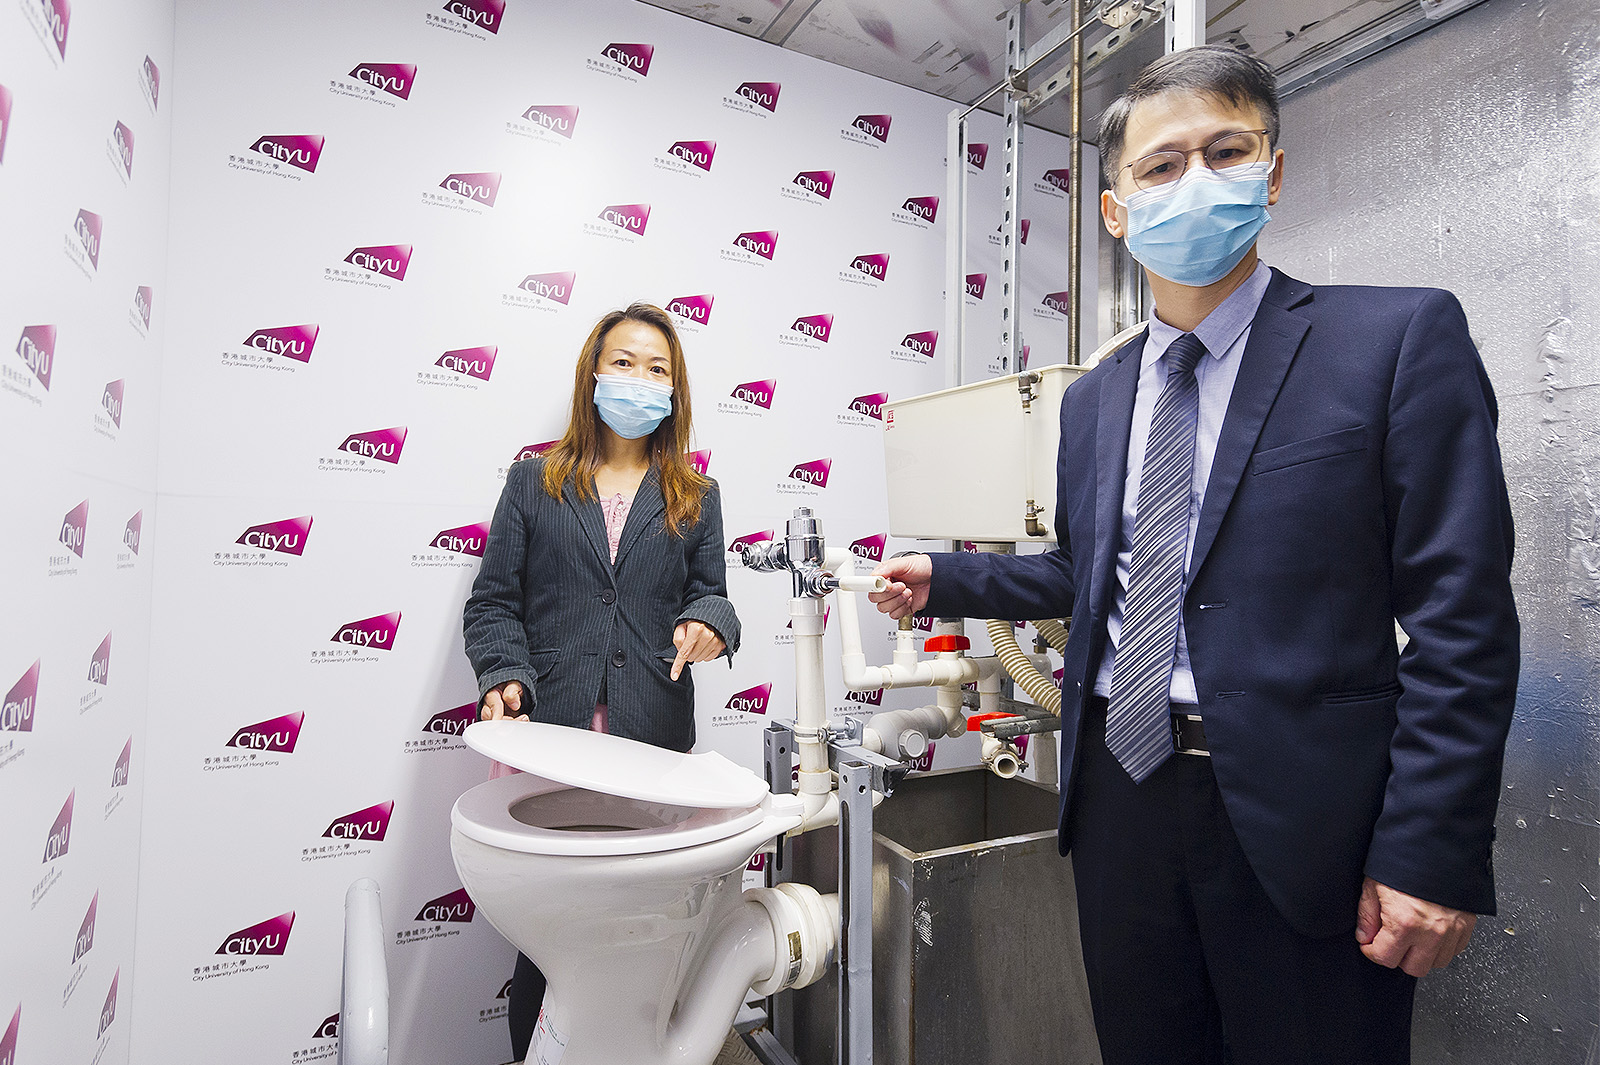 According to the findings of Professor Lai's (right) research team, aerosol droplets can rise higher if a valve type flushing system is used. Dr Li reminds the public to clean washroom facilities regularly.